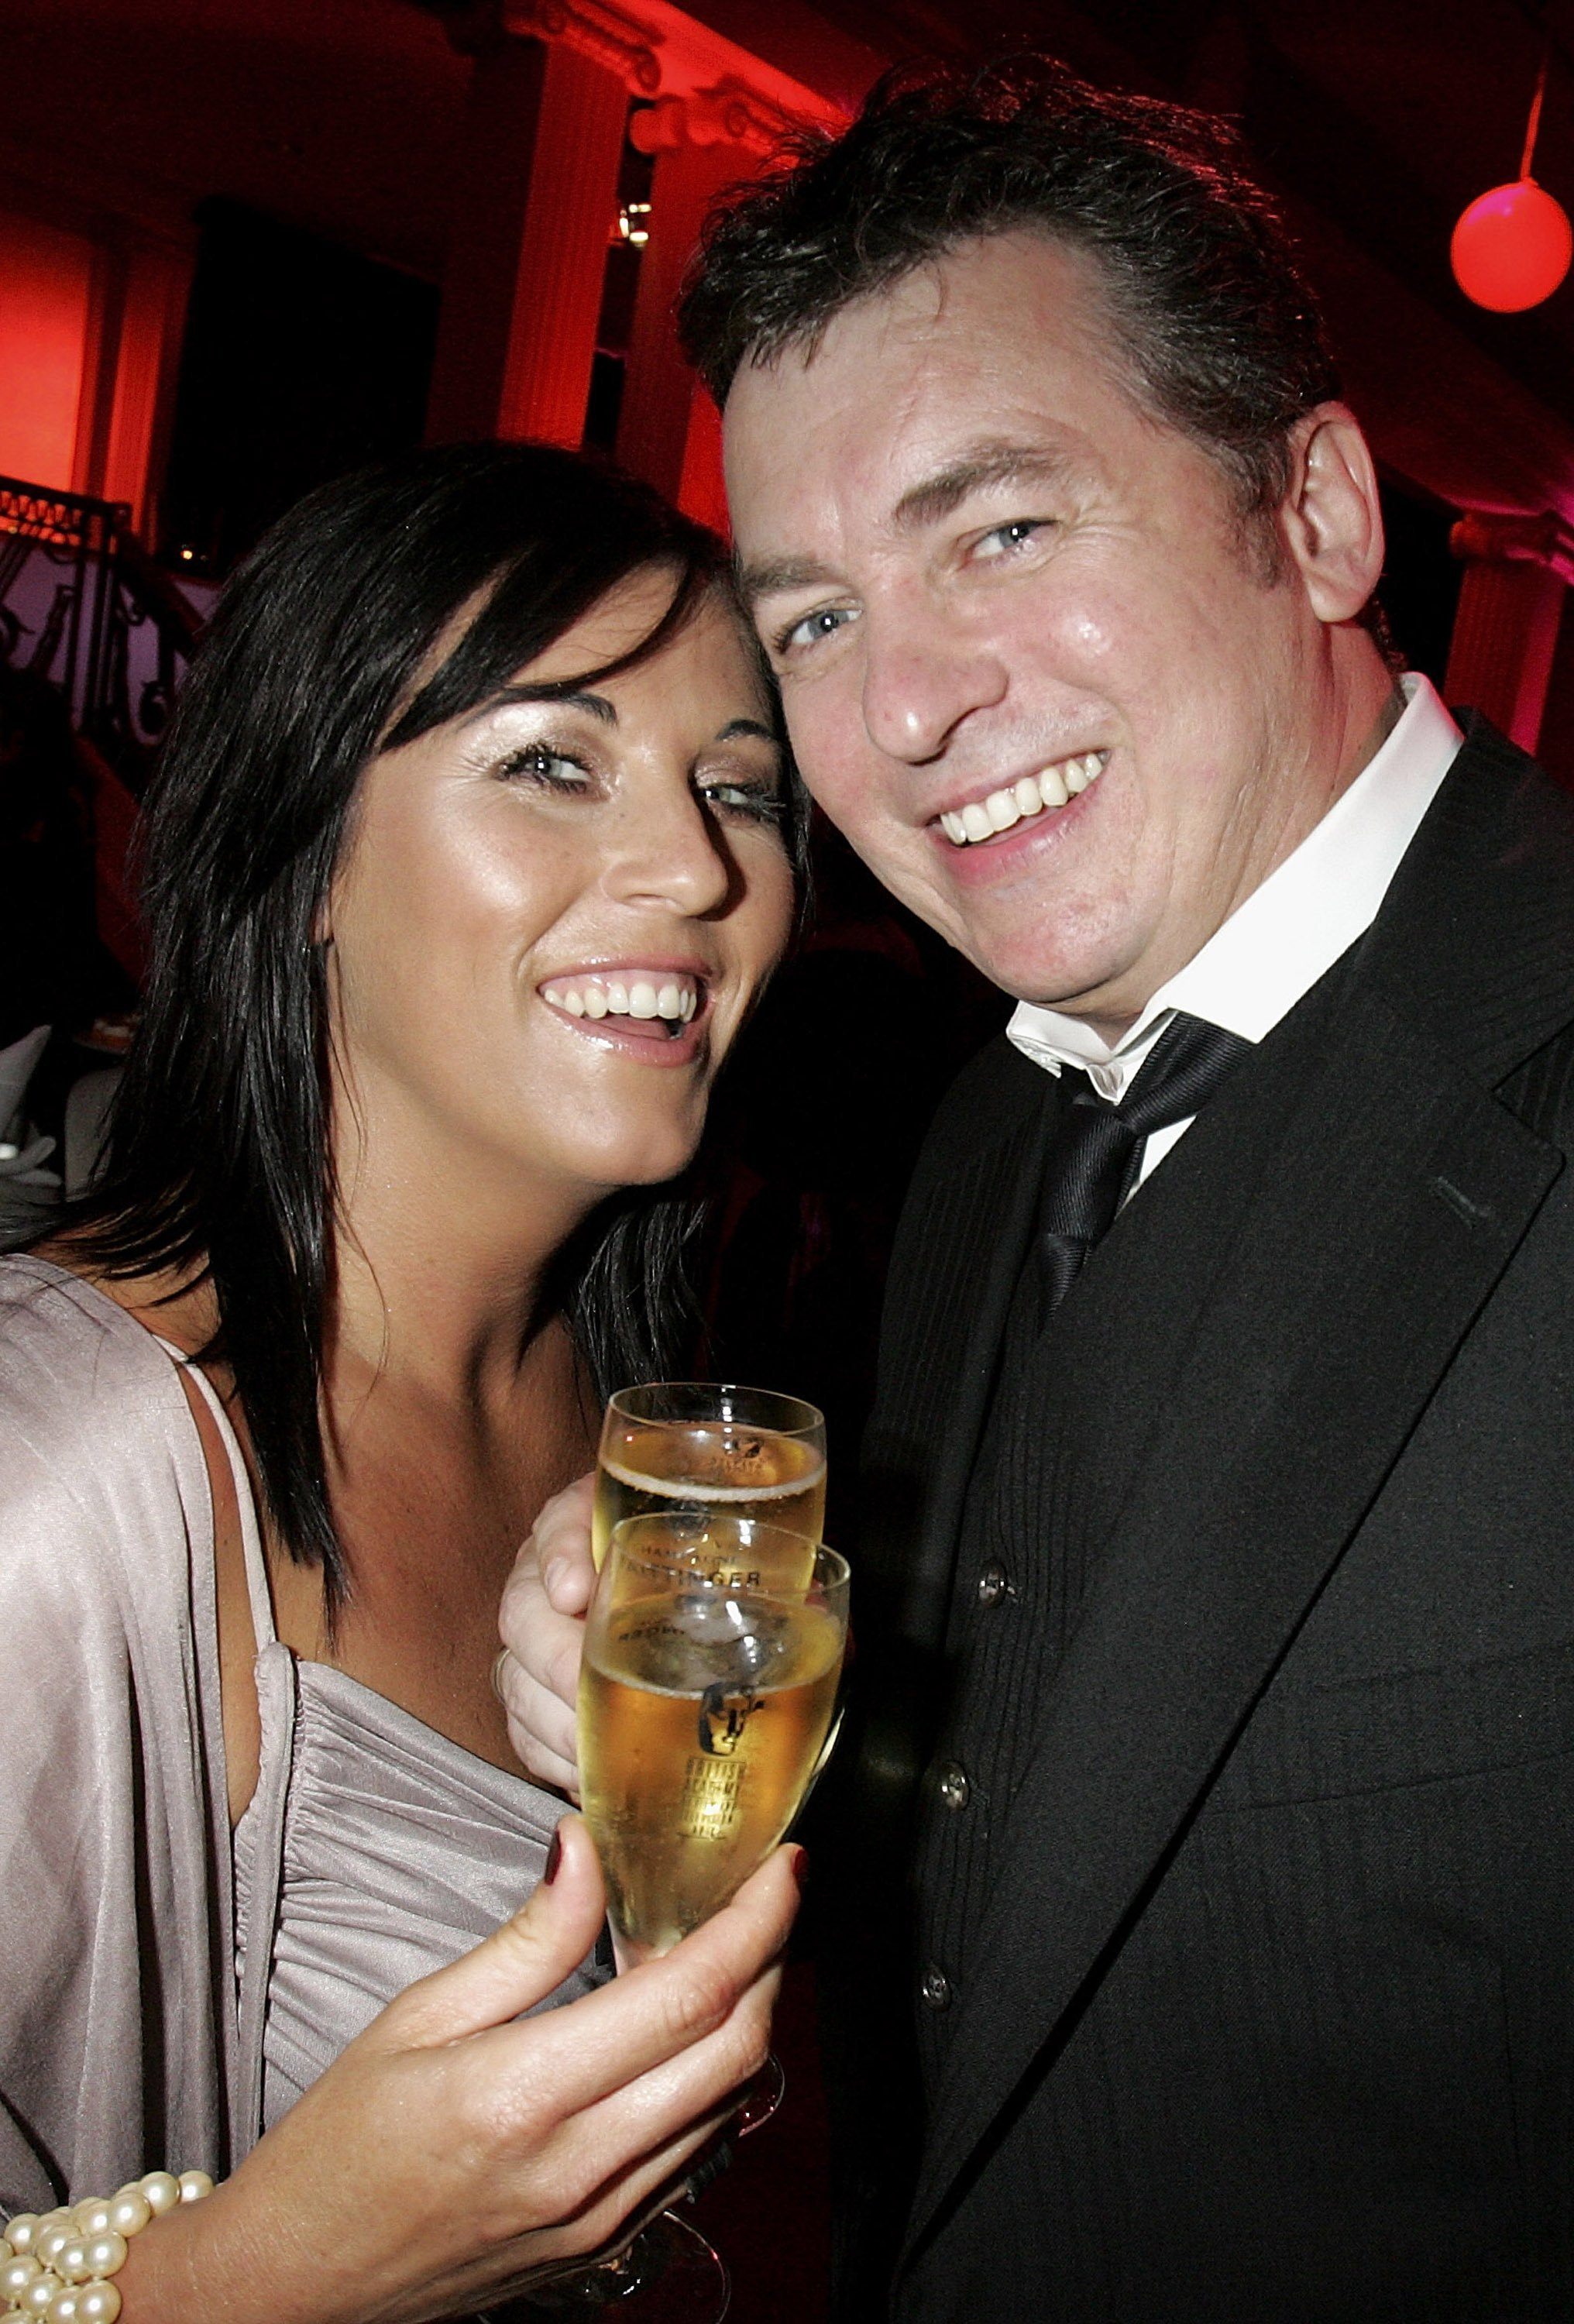 The soap star attends a champagne reception with actor Shane Richie, who played her on-screen husband Alfie Moon, in 2006